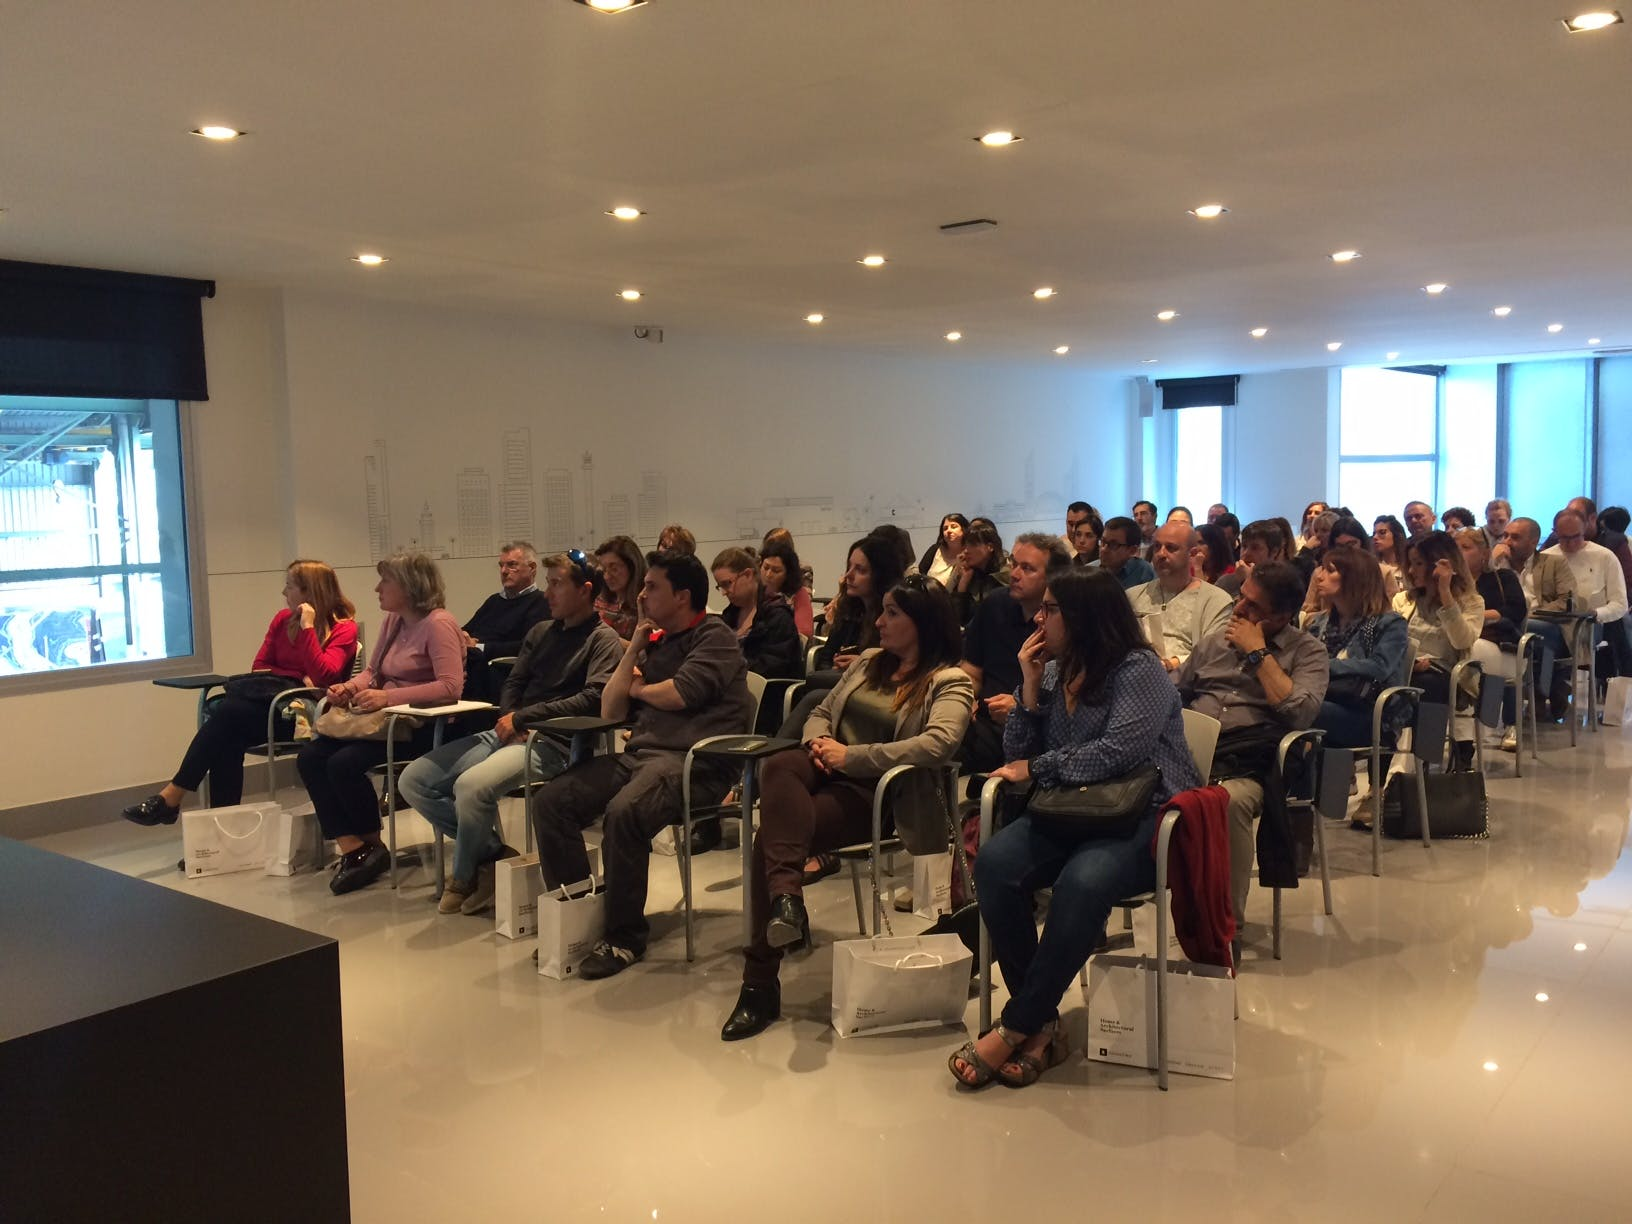 Image of Aula Cosentino Barcelona Center 1 in Cosentino brings together more than 2,000 k&b professionals - Cosentino